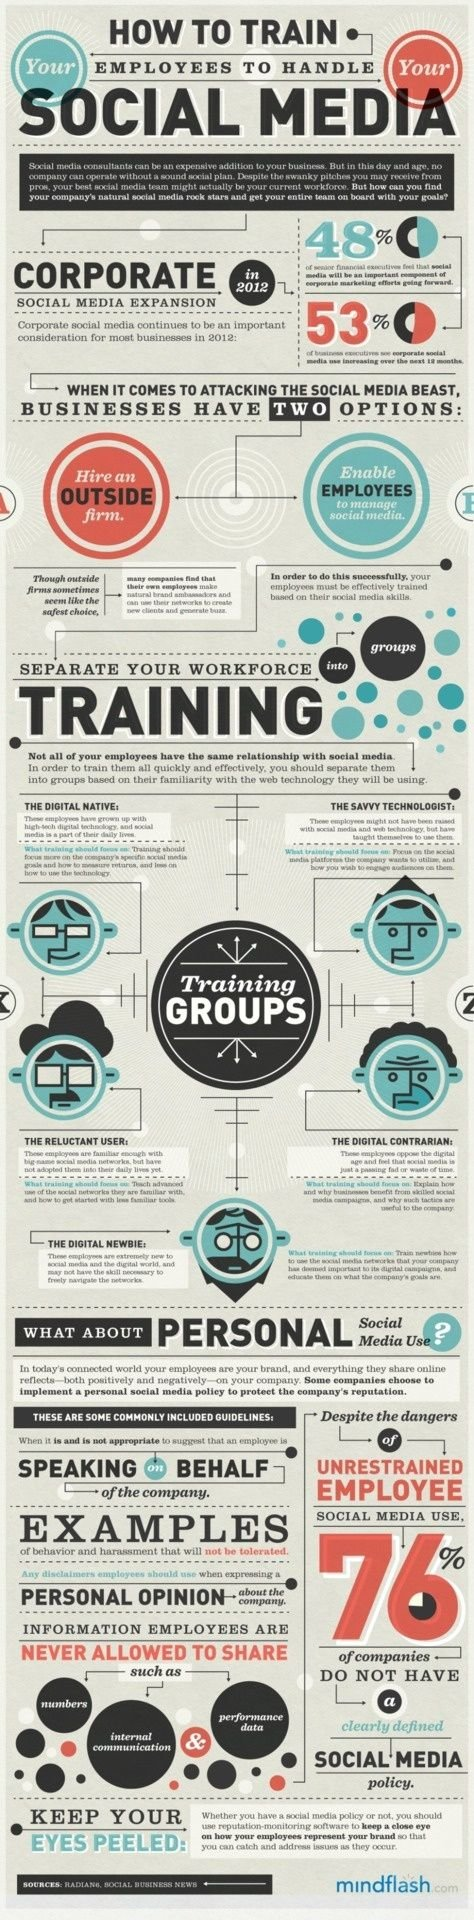 How to train your employees to handle your Social Media #infographic